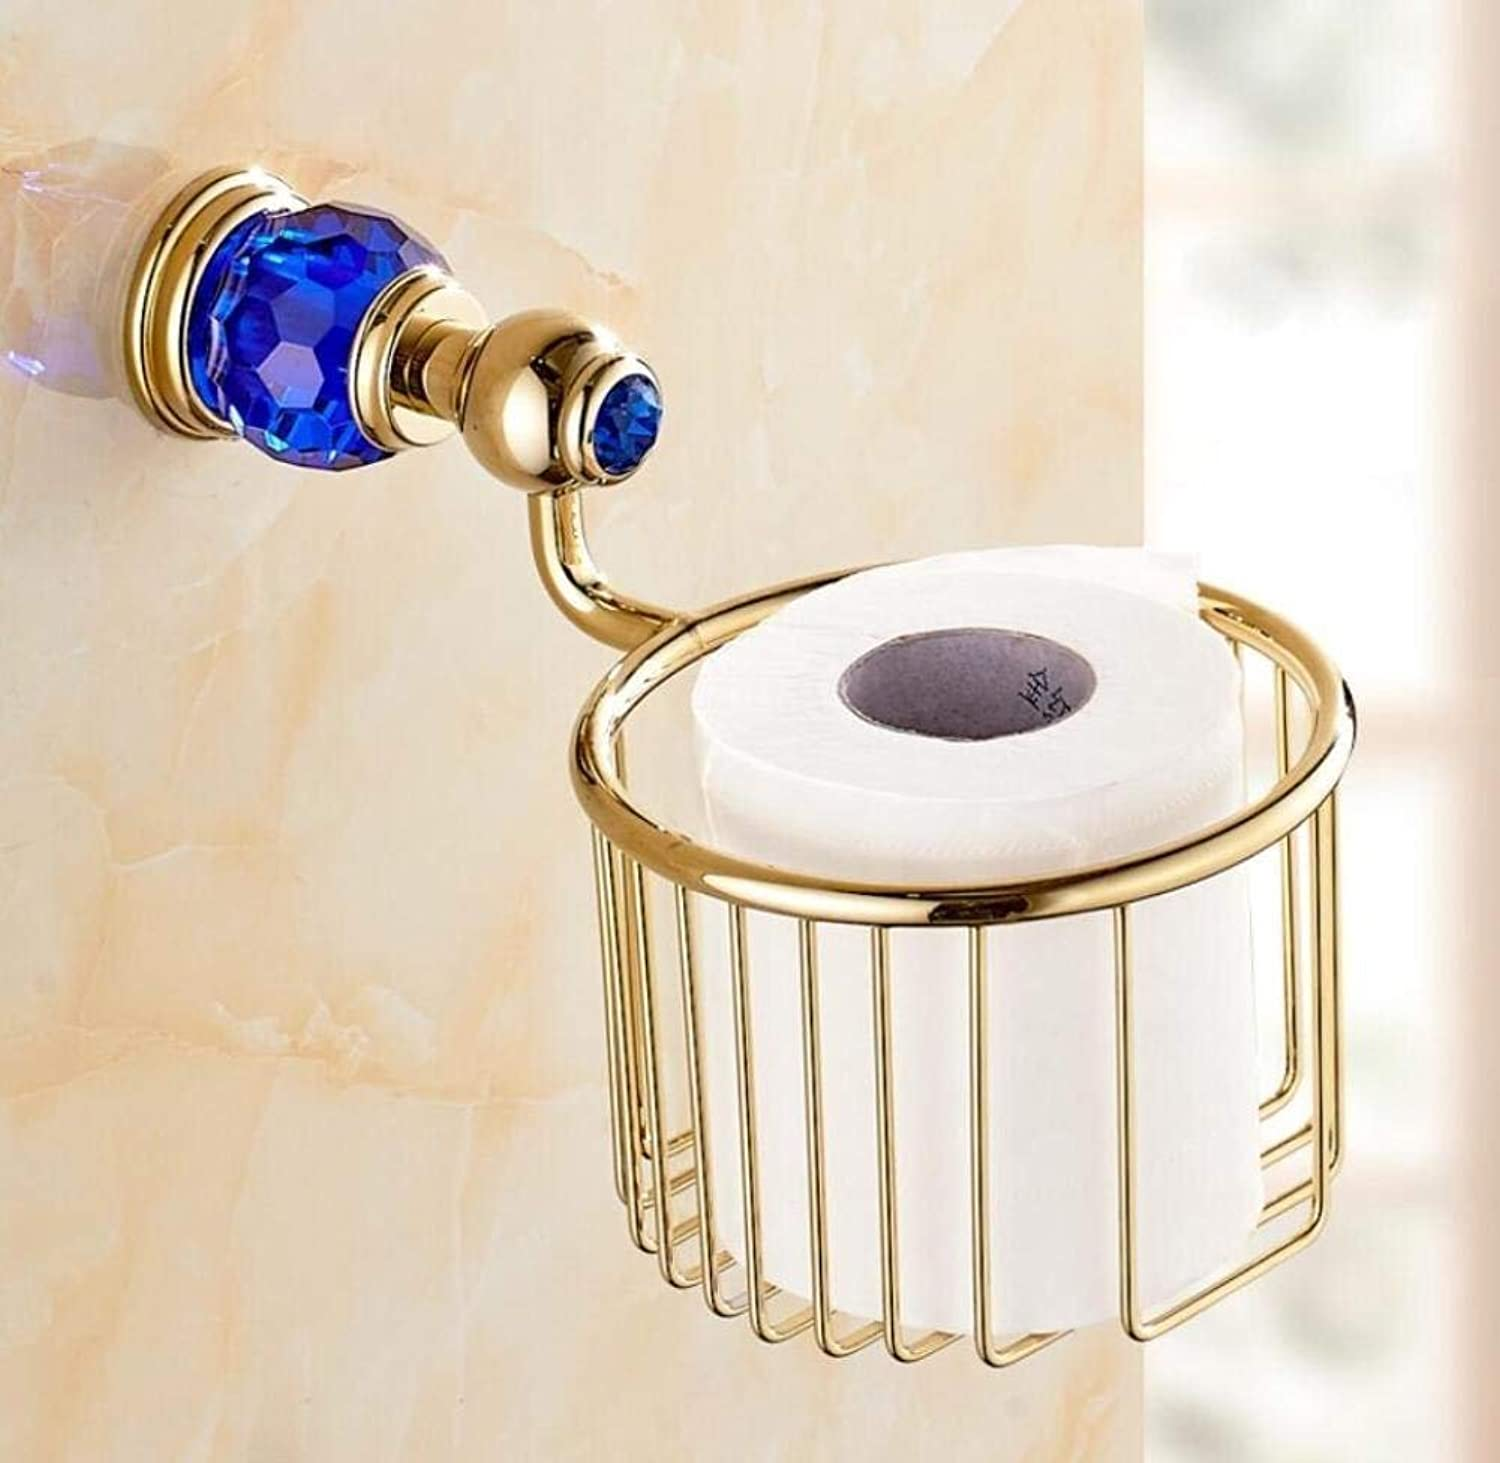 All Door-Roll of Paper in Bronze of European Style Shopping Cart Paper Towels Paper Towels Cristal Pendentif Cylinder Paper Holder WC Bathroom,a,14.5  24cm